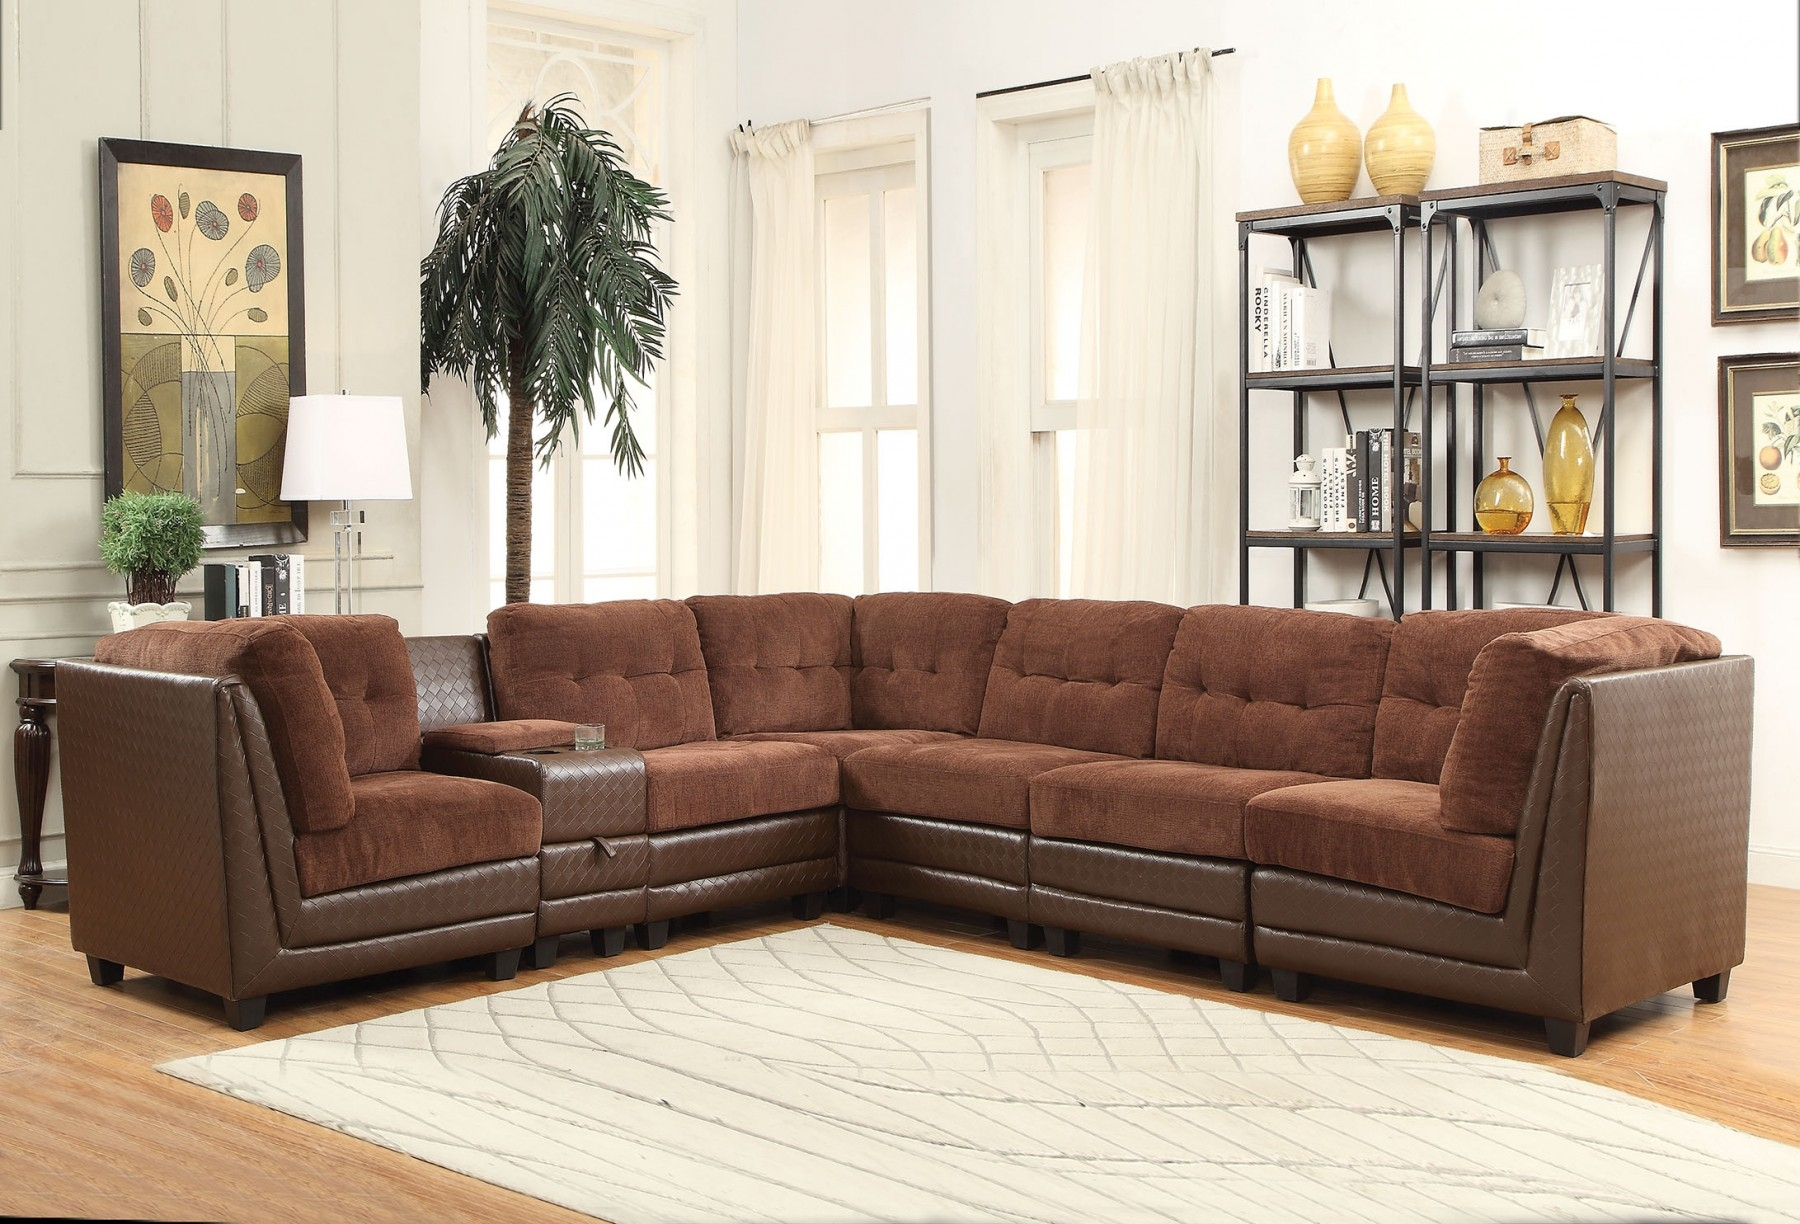 Merveilleux Vlord 52230 Reversible Sectional Sofa With 3 Wedges 3 Armless Chairs  Console Cup Holders Tufted Back